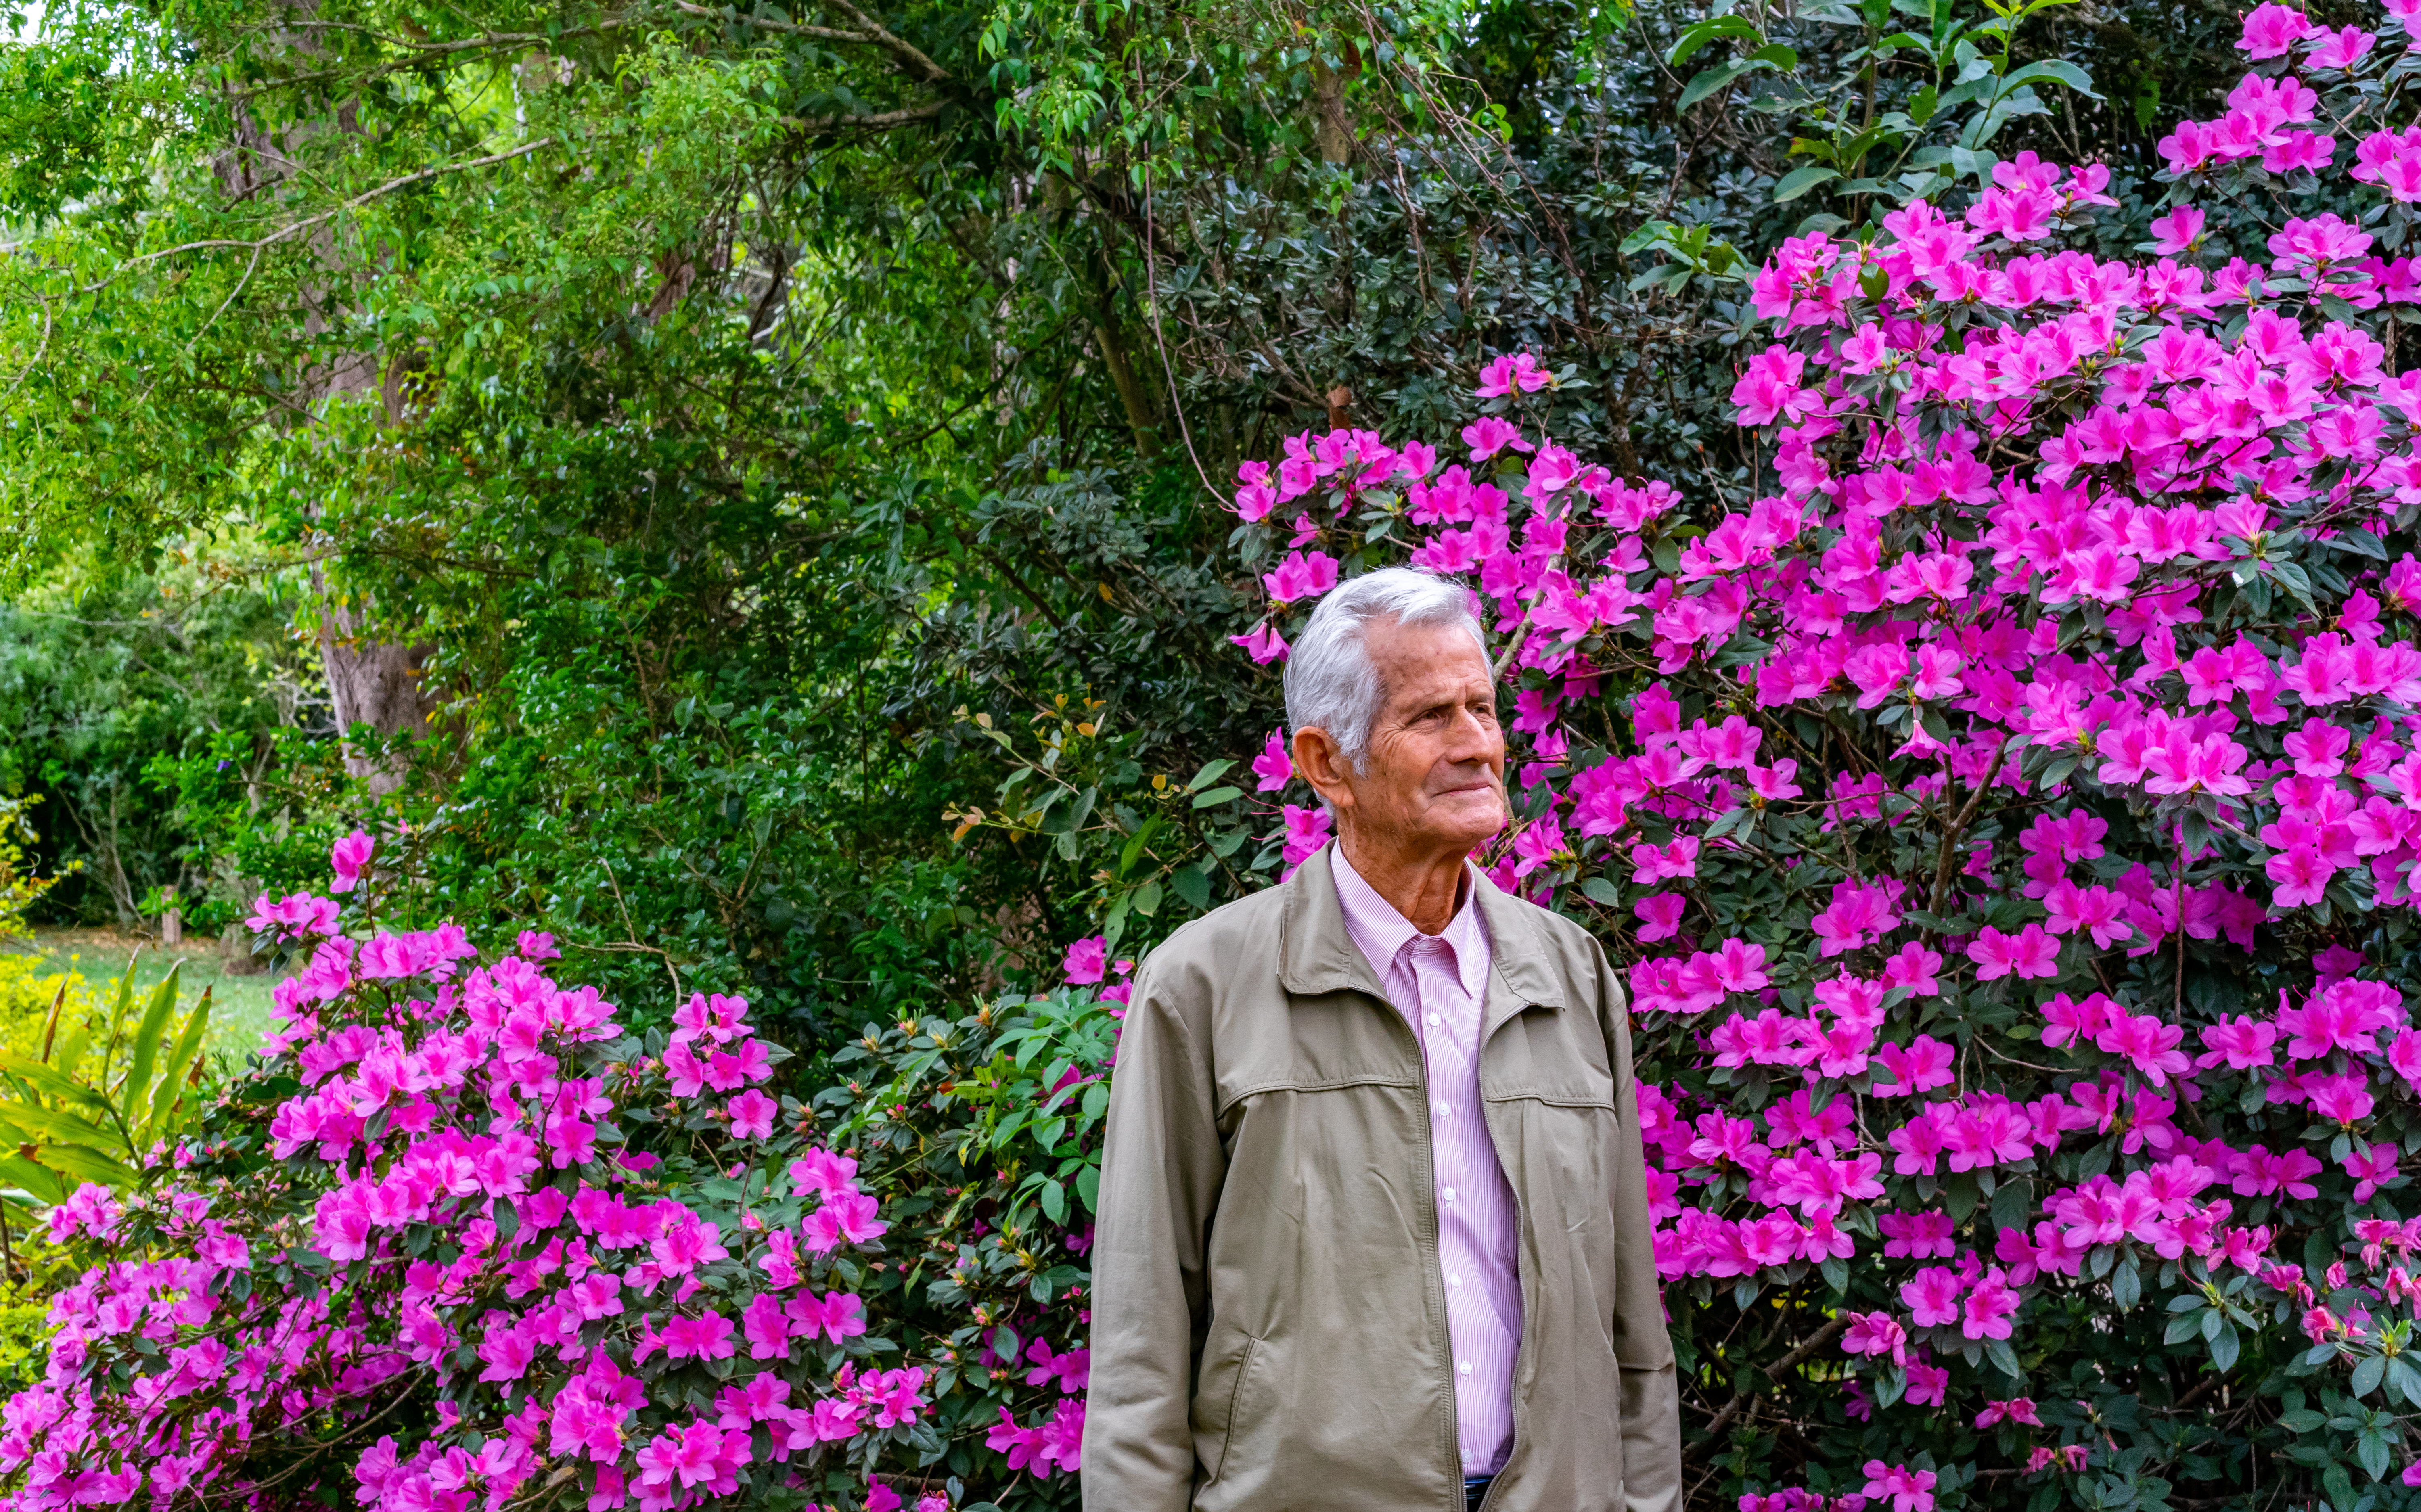 A white man, shown from the waist up, is standing in front of shrubbery with hot pink flowers and dark green leaves. He looks to his left. He has white hair and wears a light pink button-down shirt and a gray jacket.